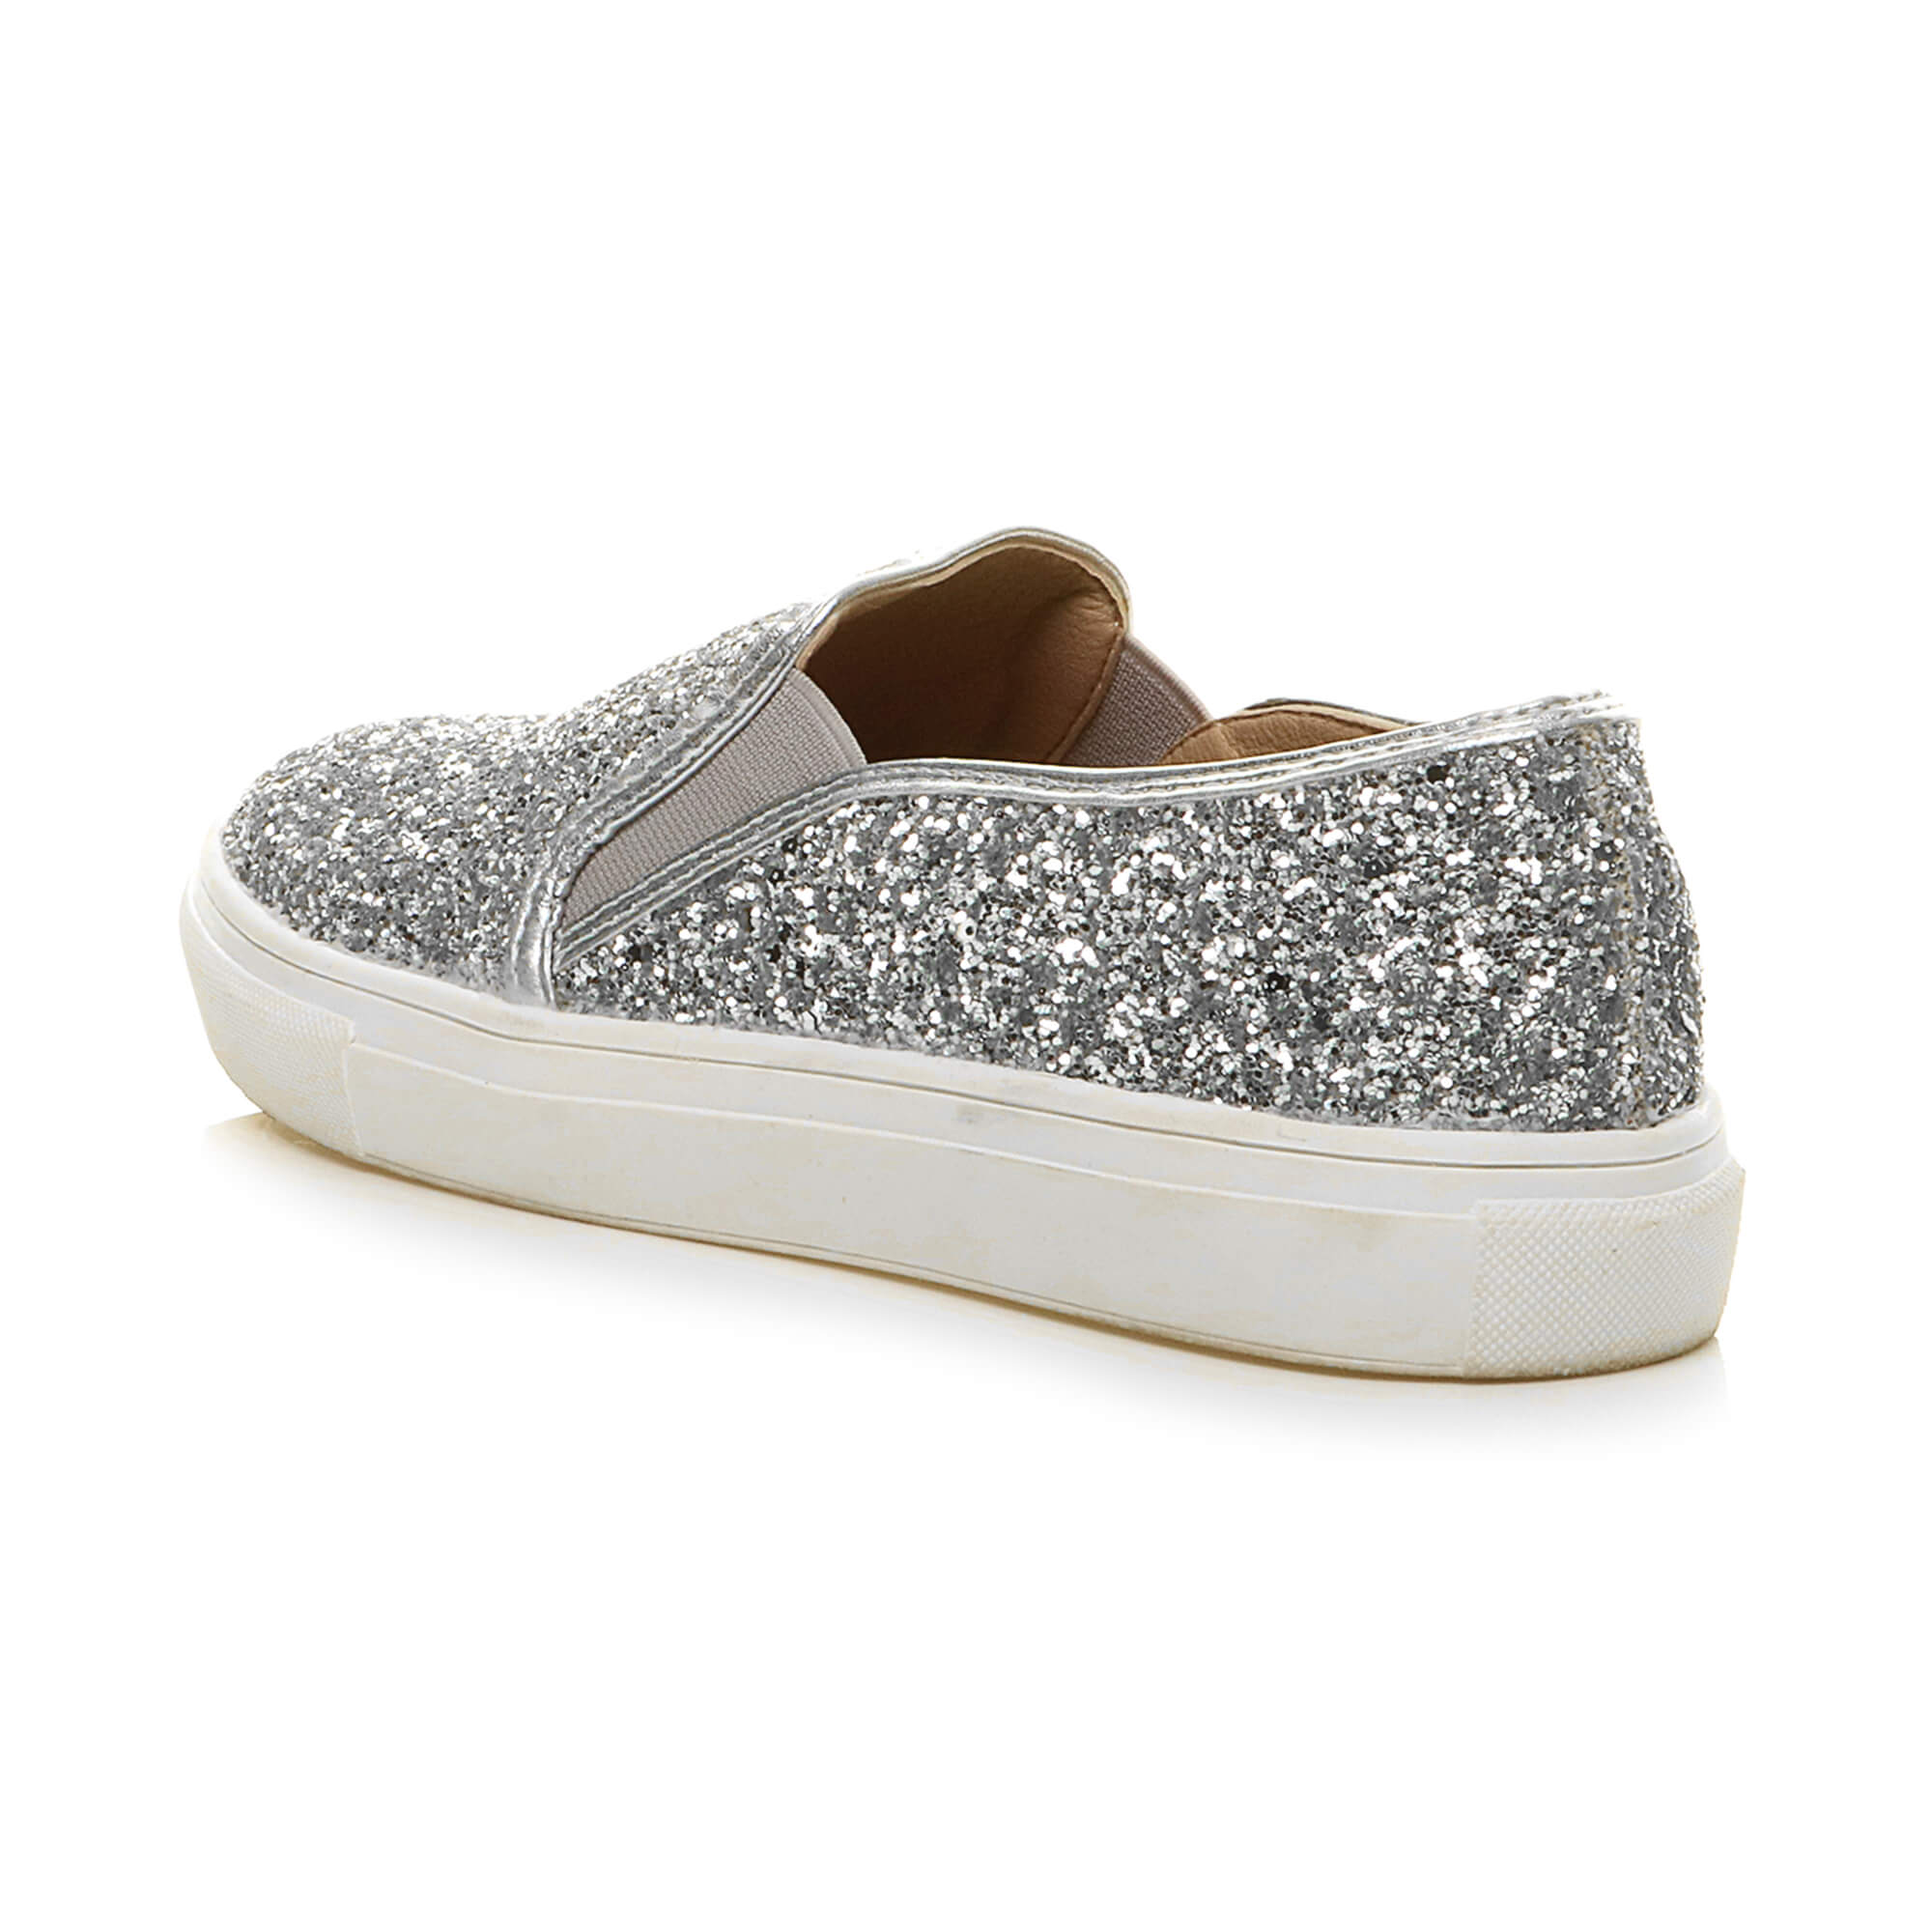 eae5f49be Womens ladies flat glitter sparkly slip on casual plimsoles trainers ...